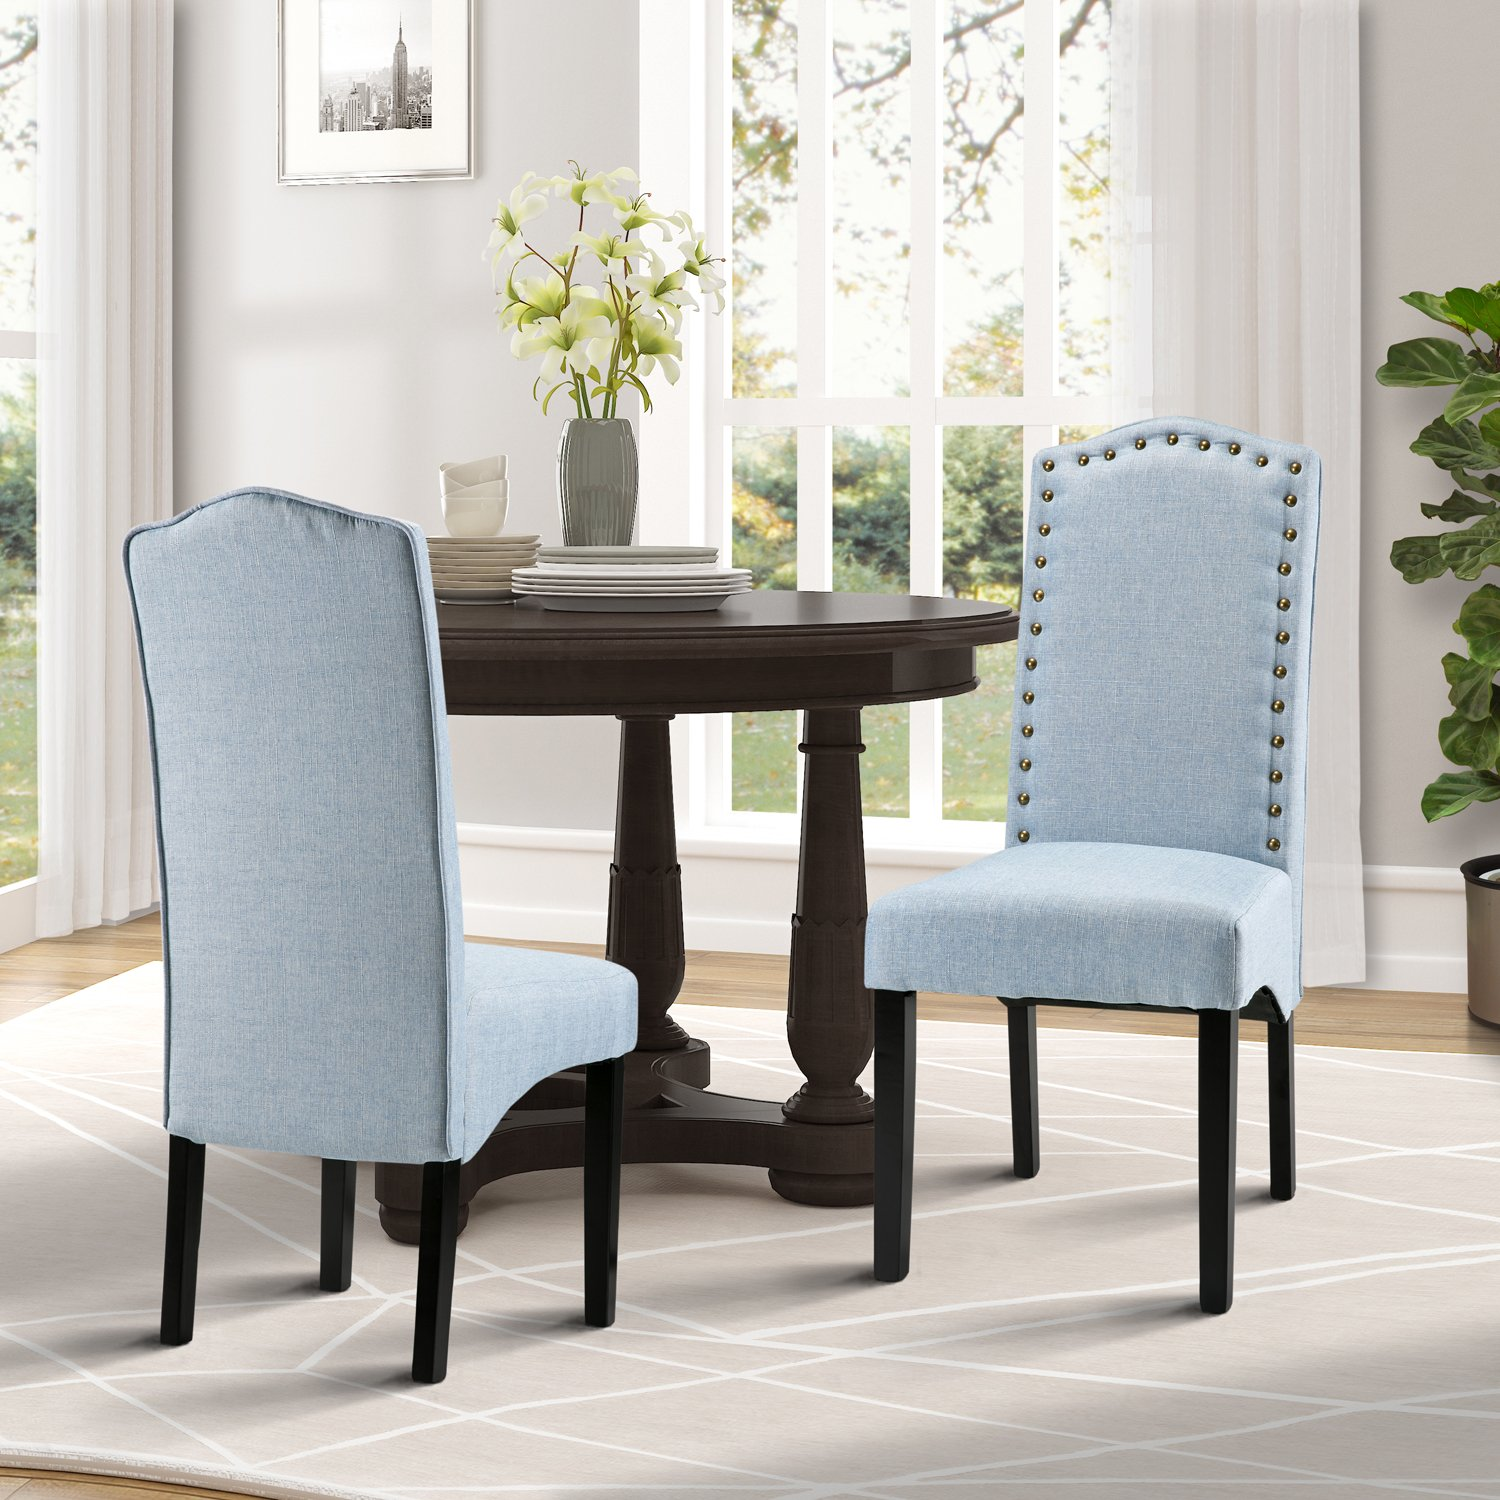 merax fabric accent chair dining room with solid set table wood legs light blue chairs country quilted runners cocktail and end sets mirrored furniture ikea brown lamp acrylic